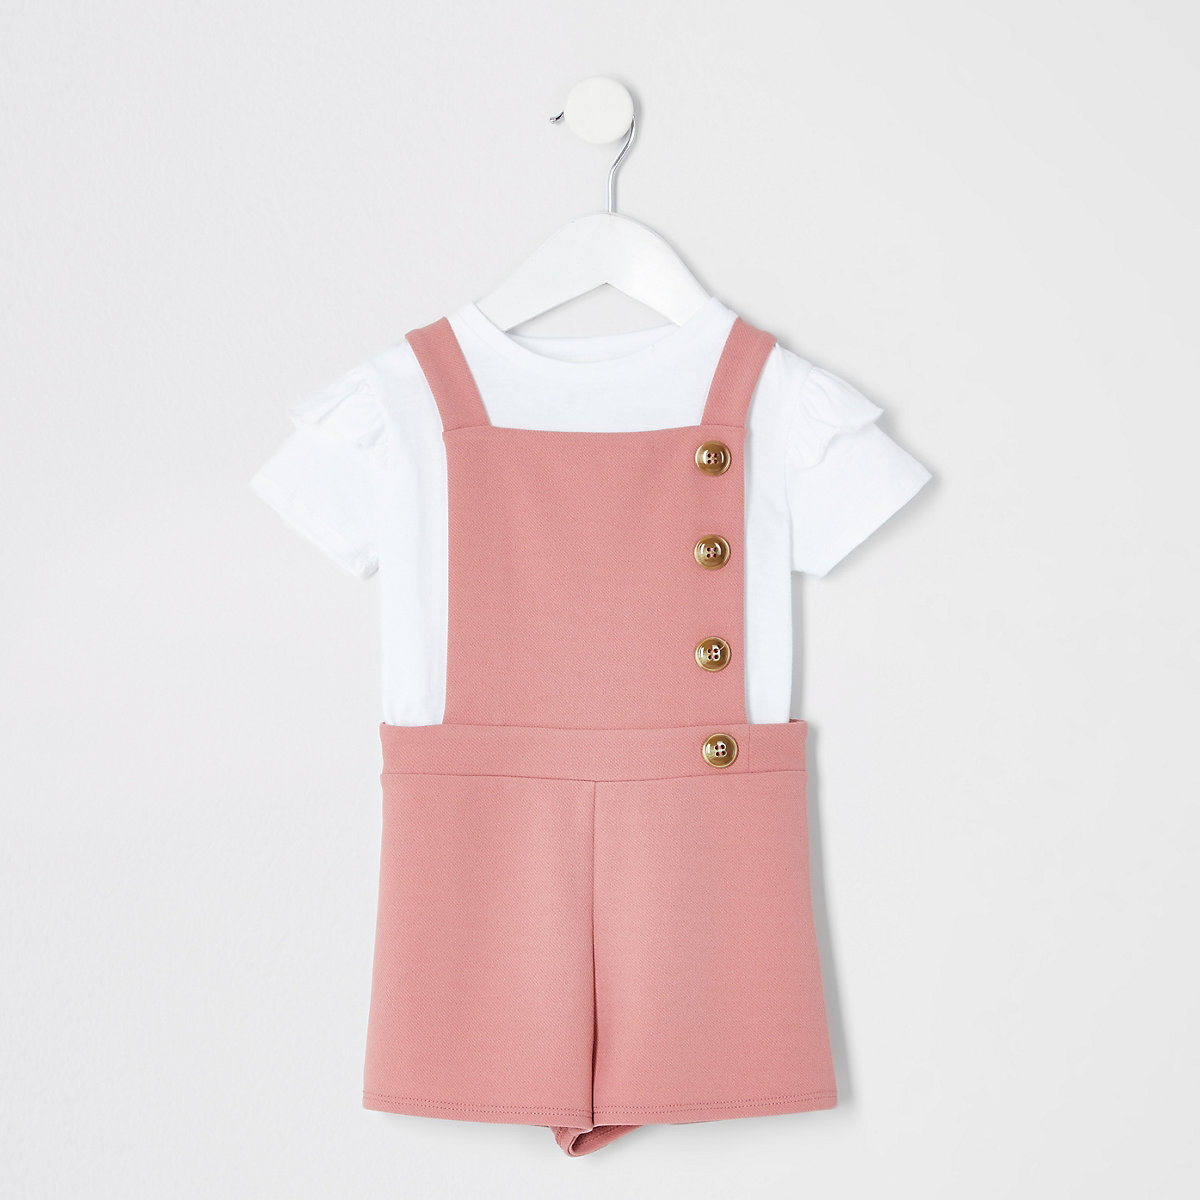 Mini girls pink pinafore romper outfit